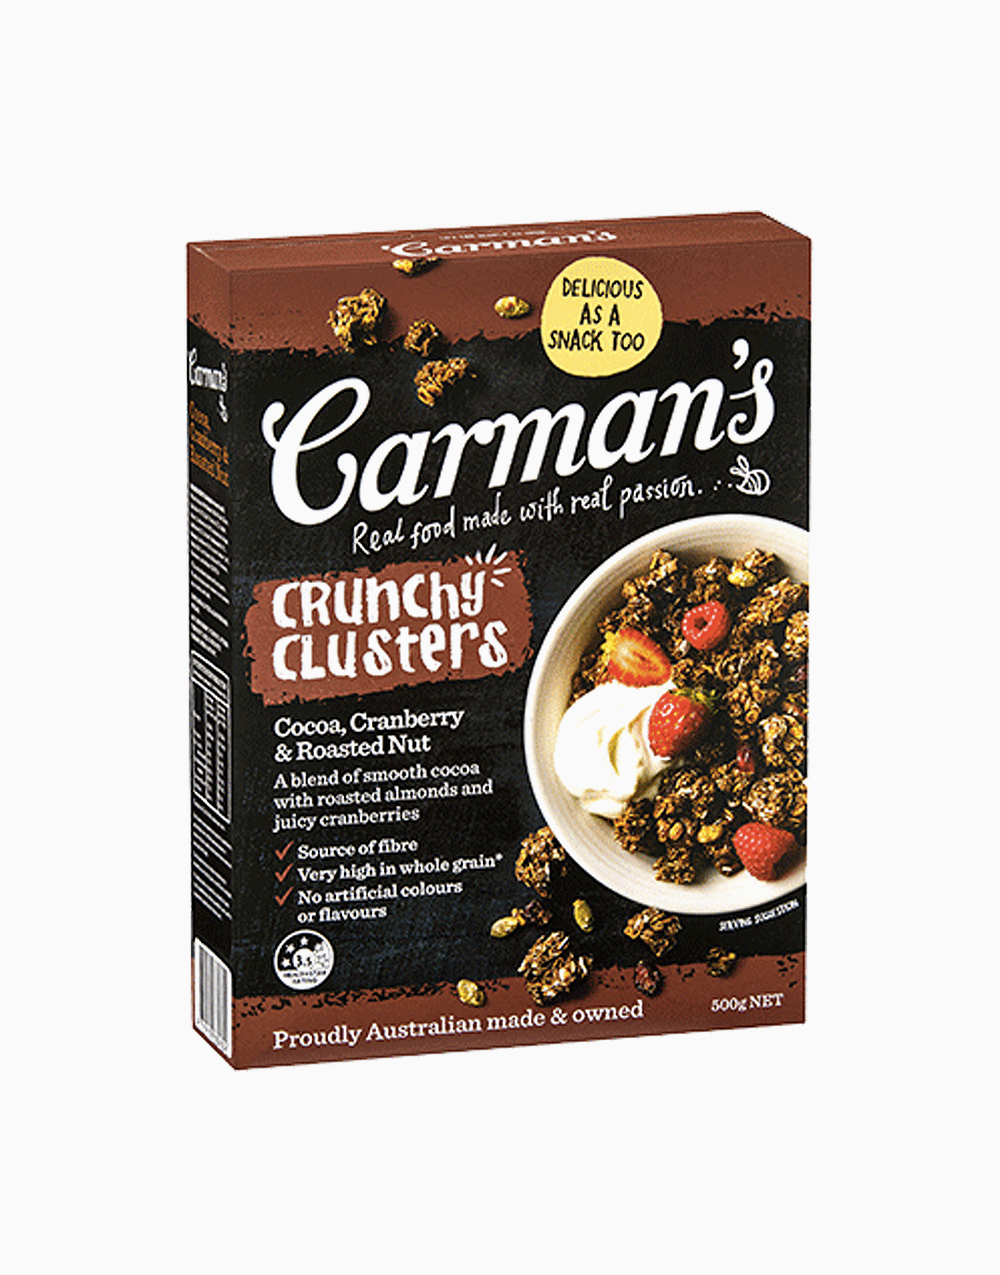 Crunchy Clusters by Carman's